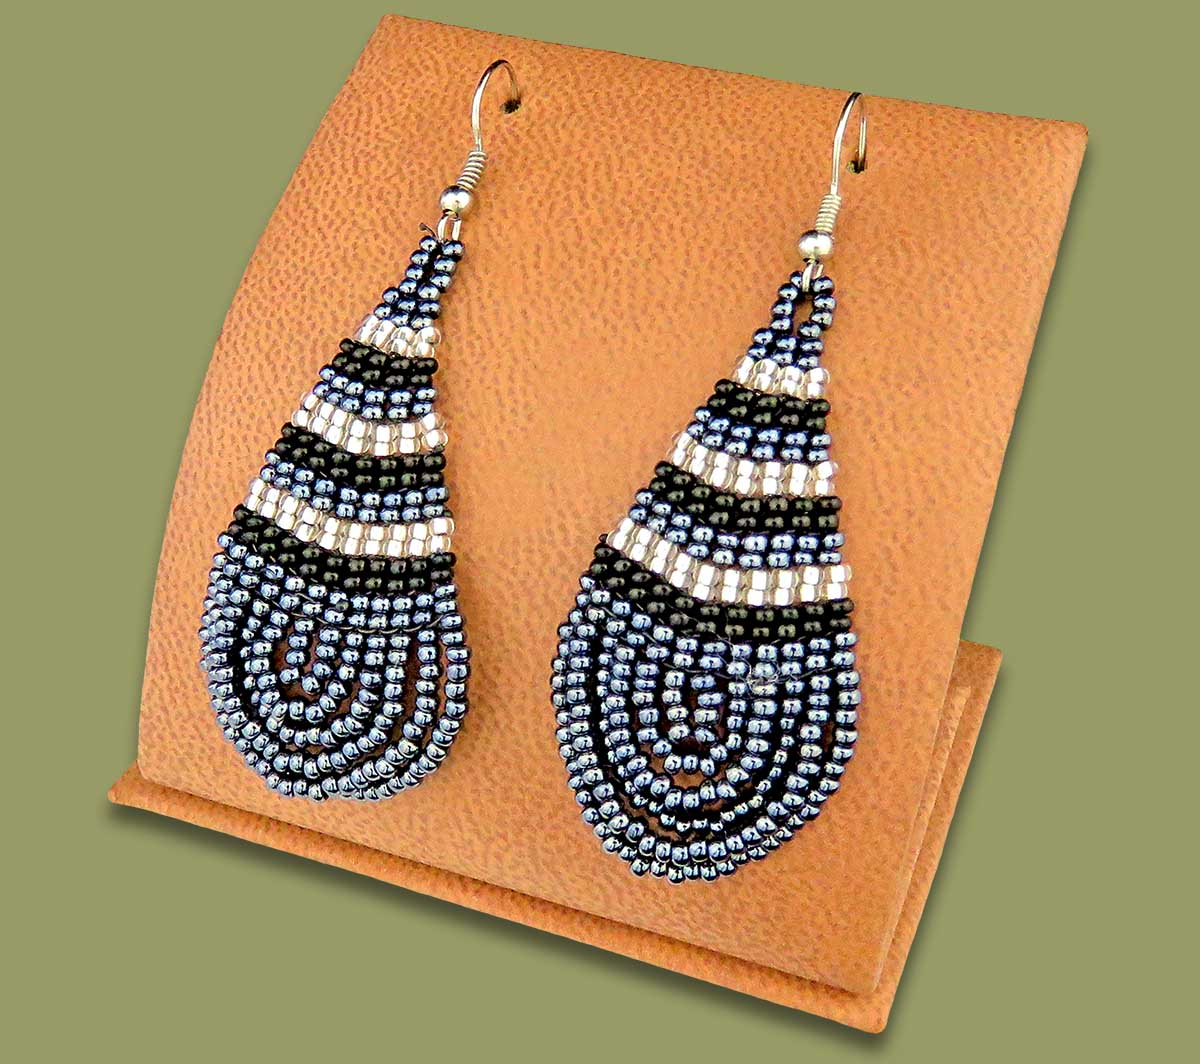 Large Beaded Ear Rings Tear Drop Metallic Silver Black